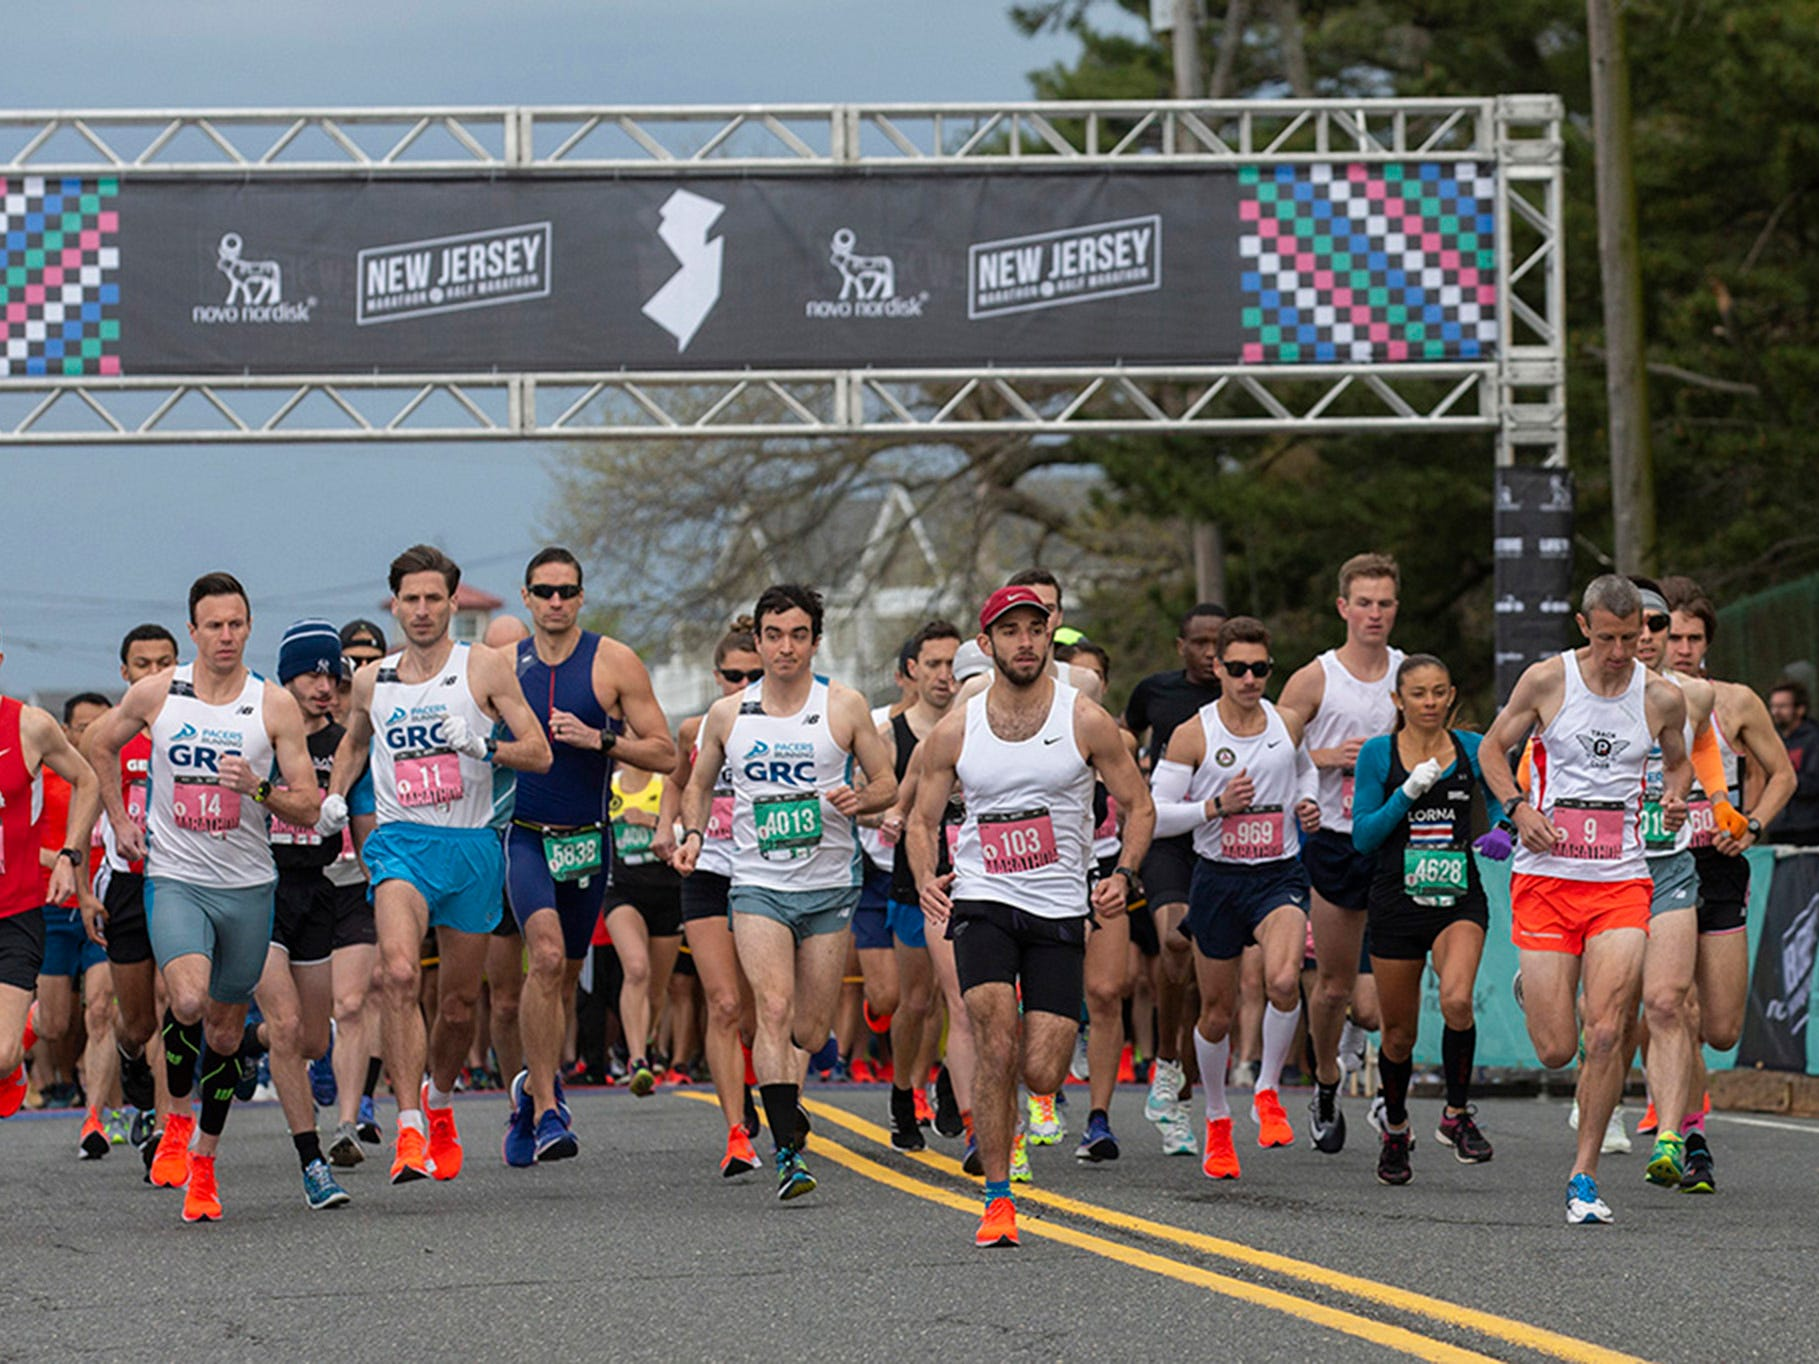 Start of the 2019 Novo Nordisk New Jersey Marathon and Half Marathon which started at Monmouth Park in Oceanport and ended at Ocean Promenade in Long Branch.